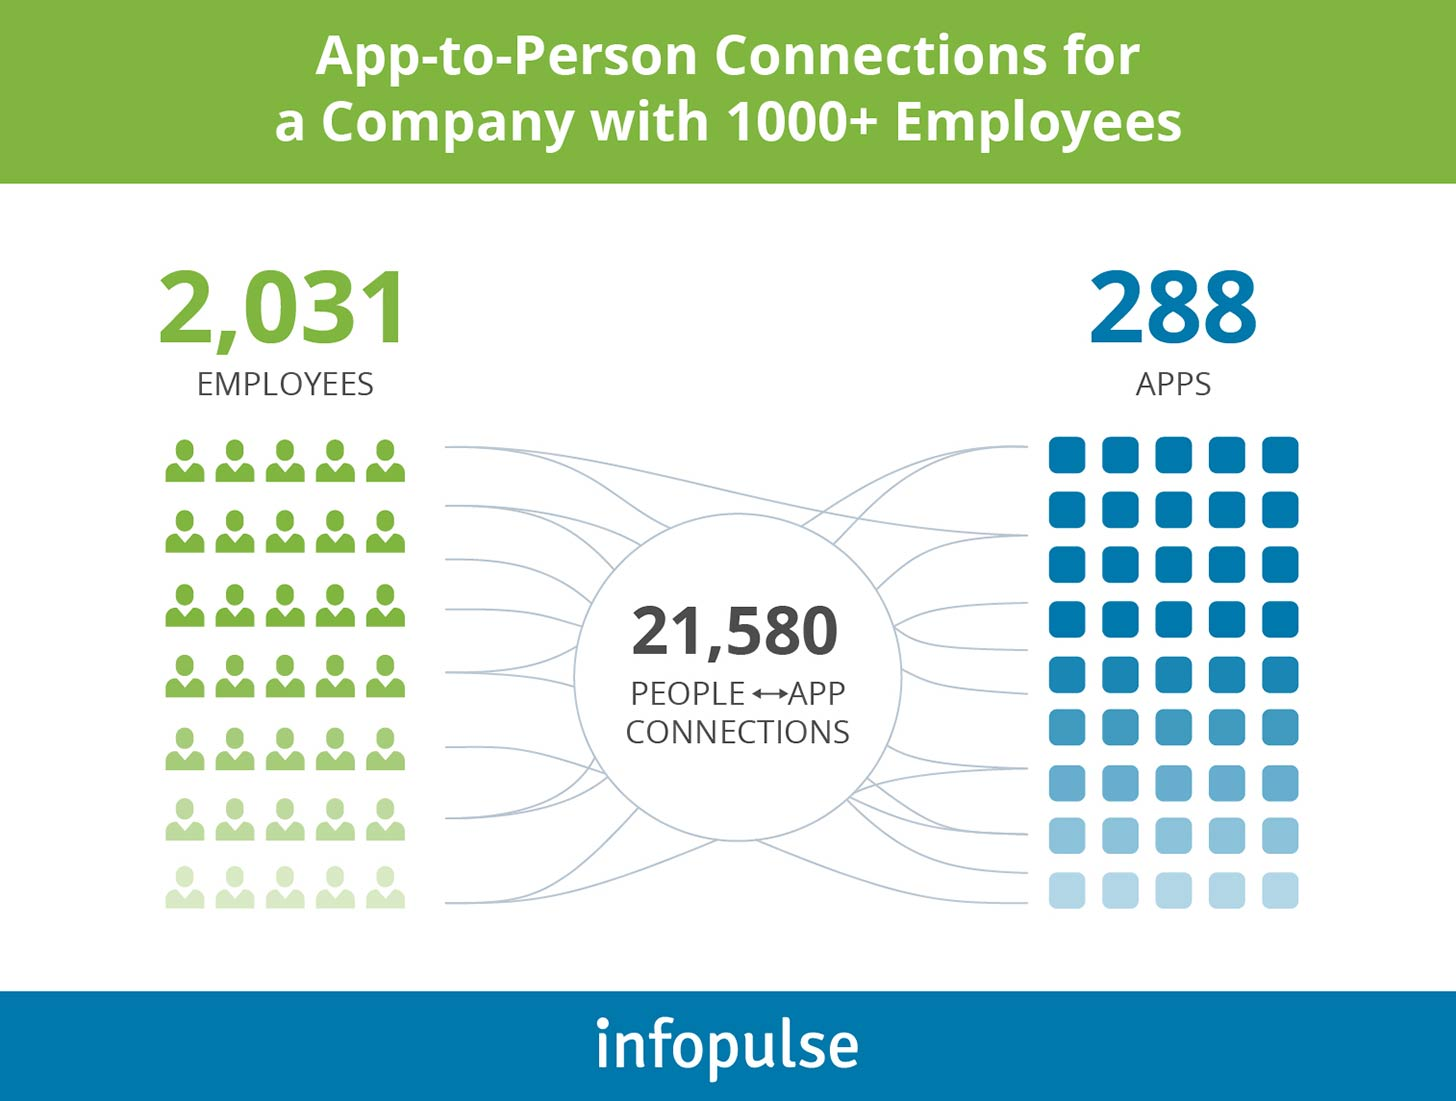 App-to-Person Connections for a Company with 1000+ Employees - Infopulse - 1